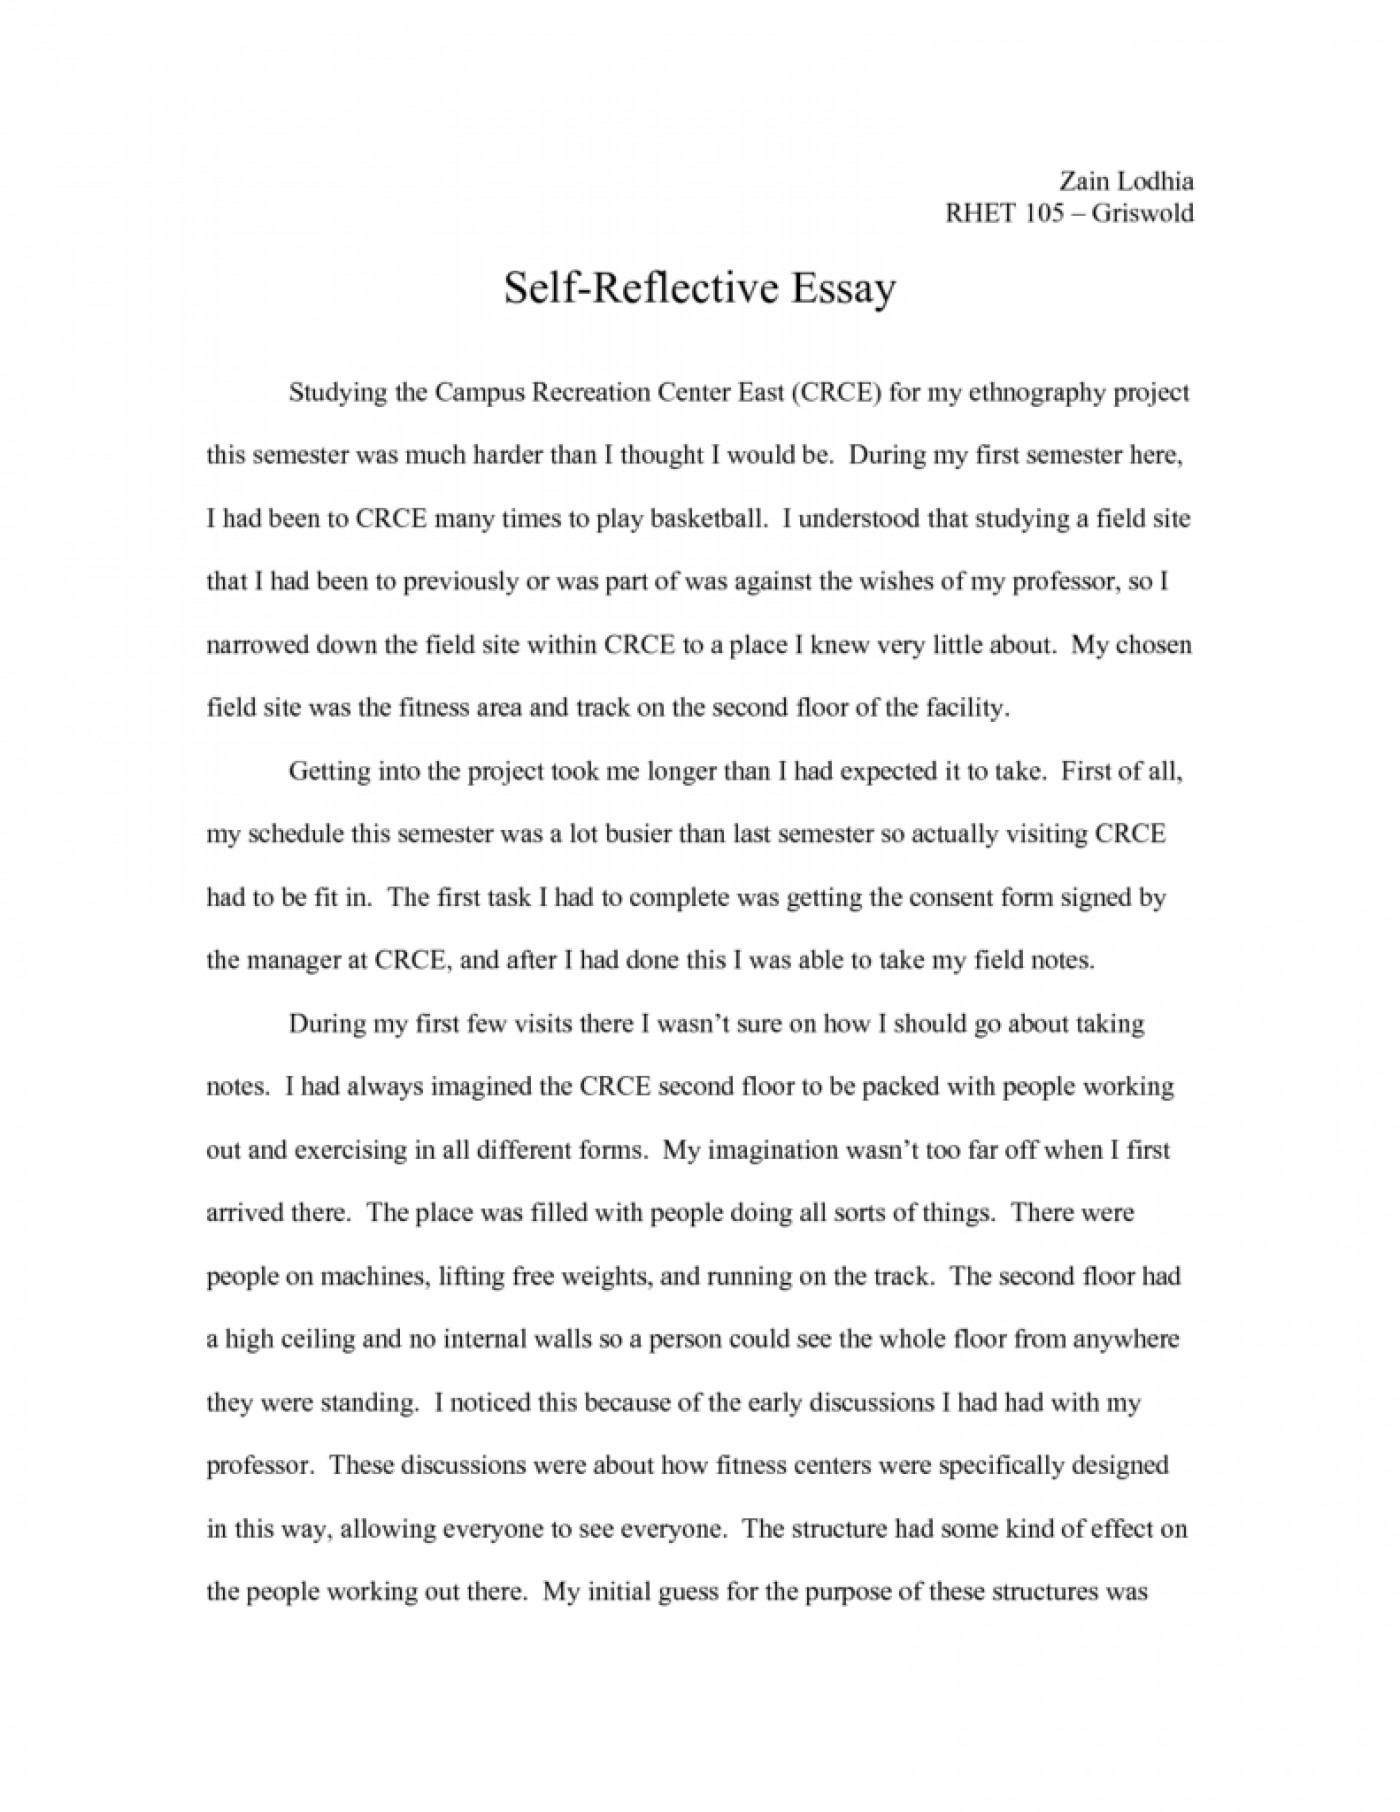 009 Examples Of Self Reflection Essay Essays Introduction Reflective Ejhet Unforgettable Example About Life Pdf High School Students Apa 1400